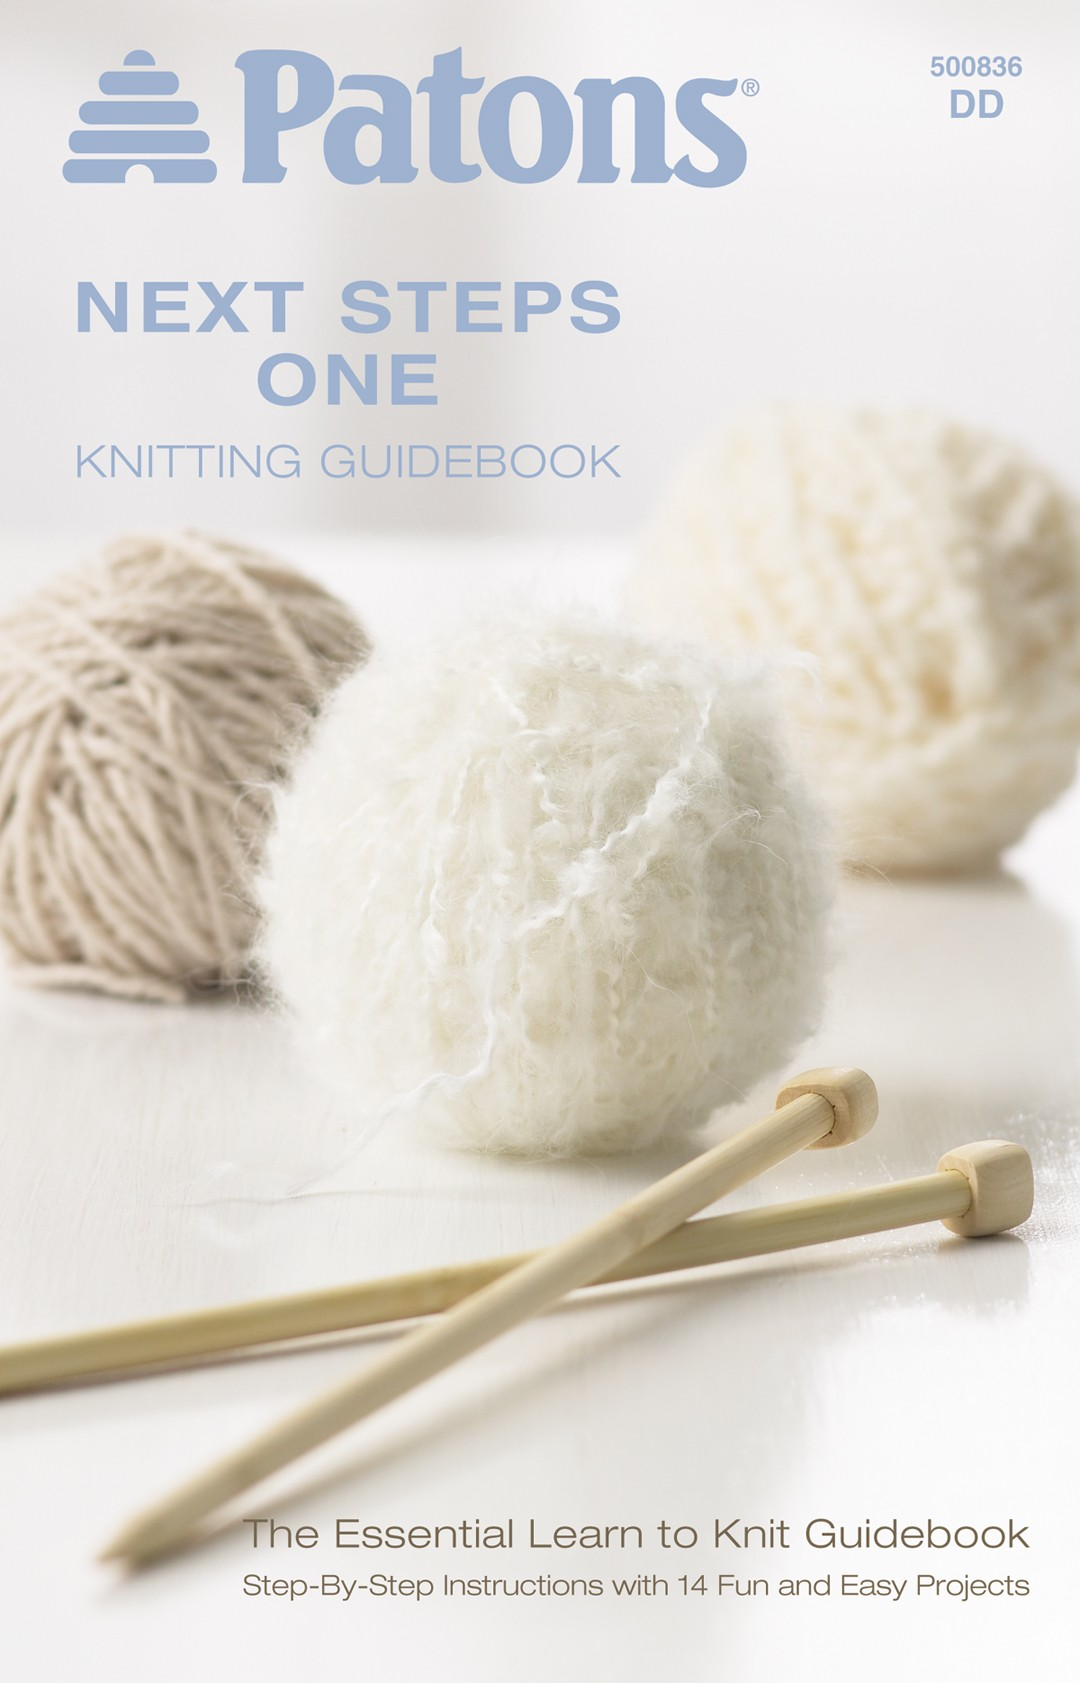 Next Steps One - Knitting Guidebook